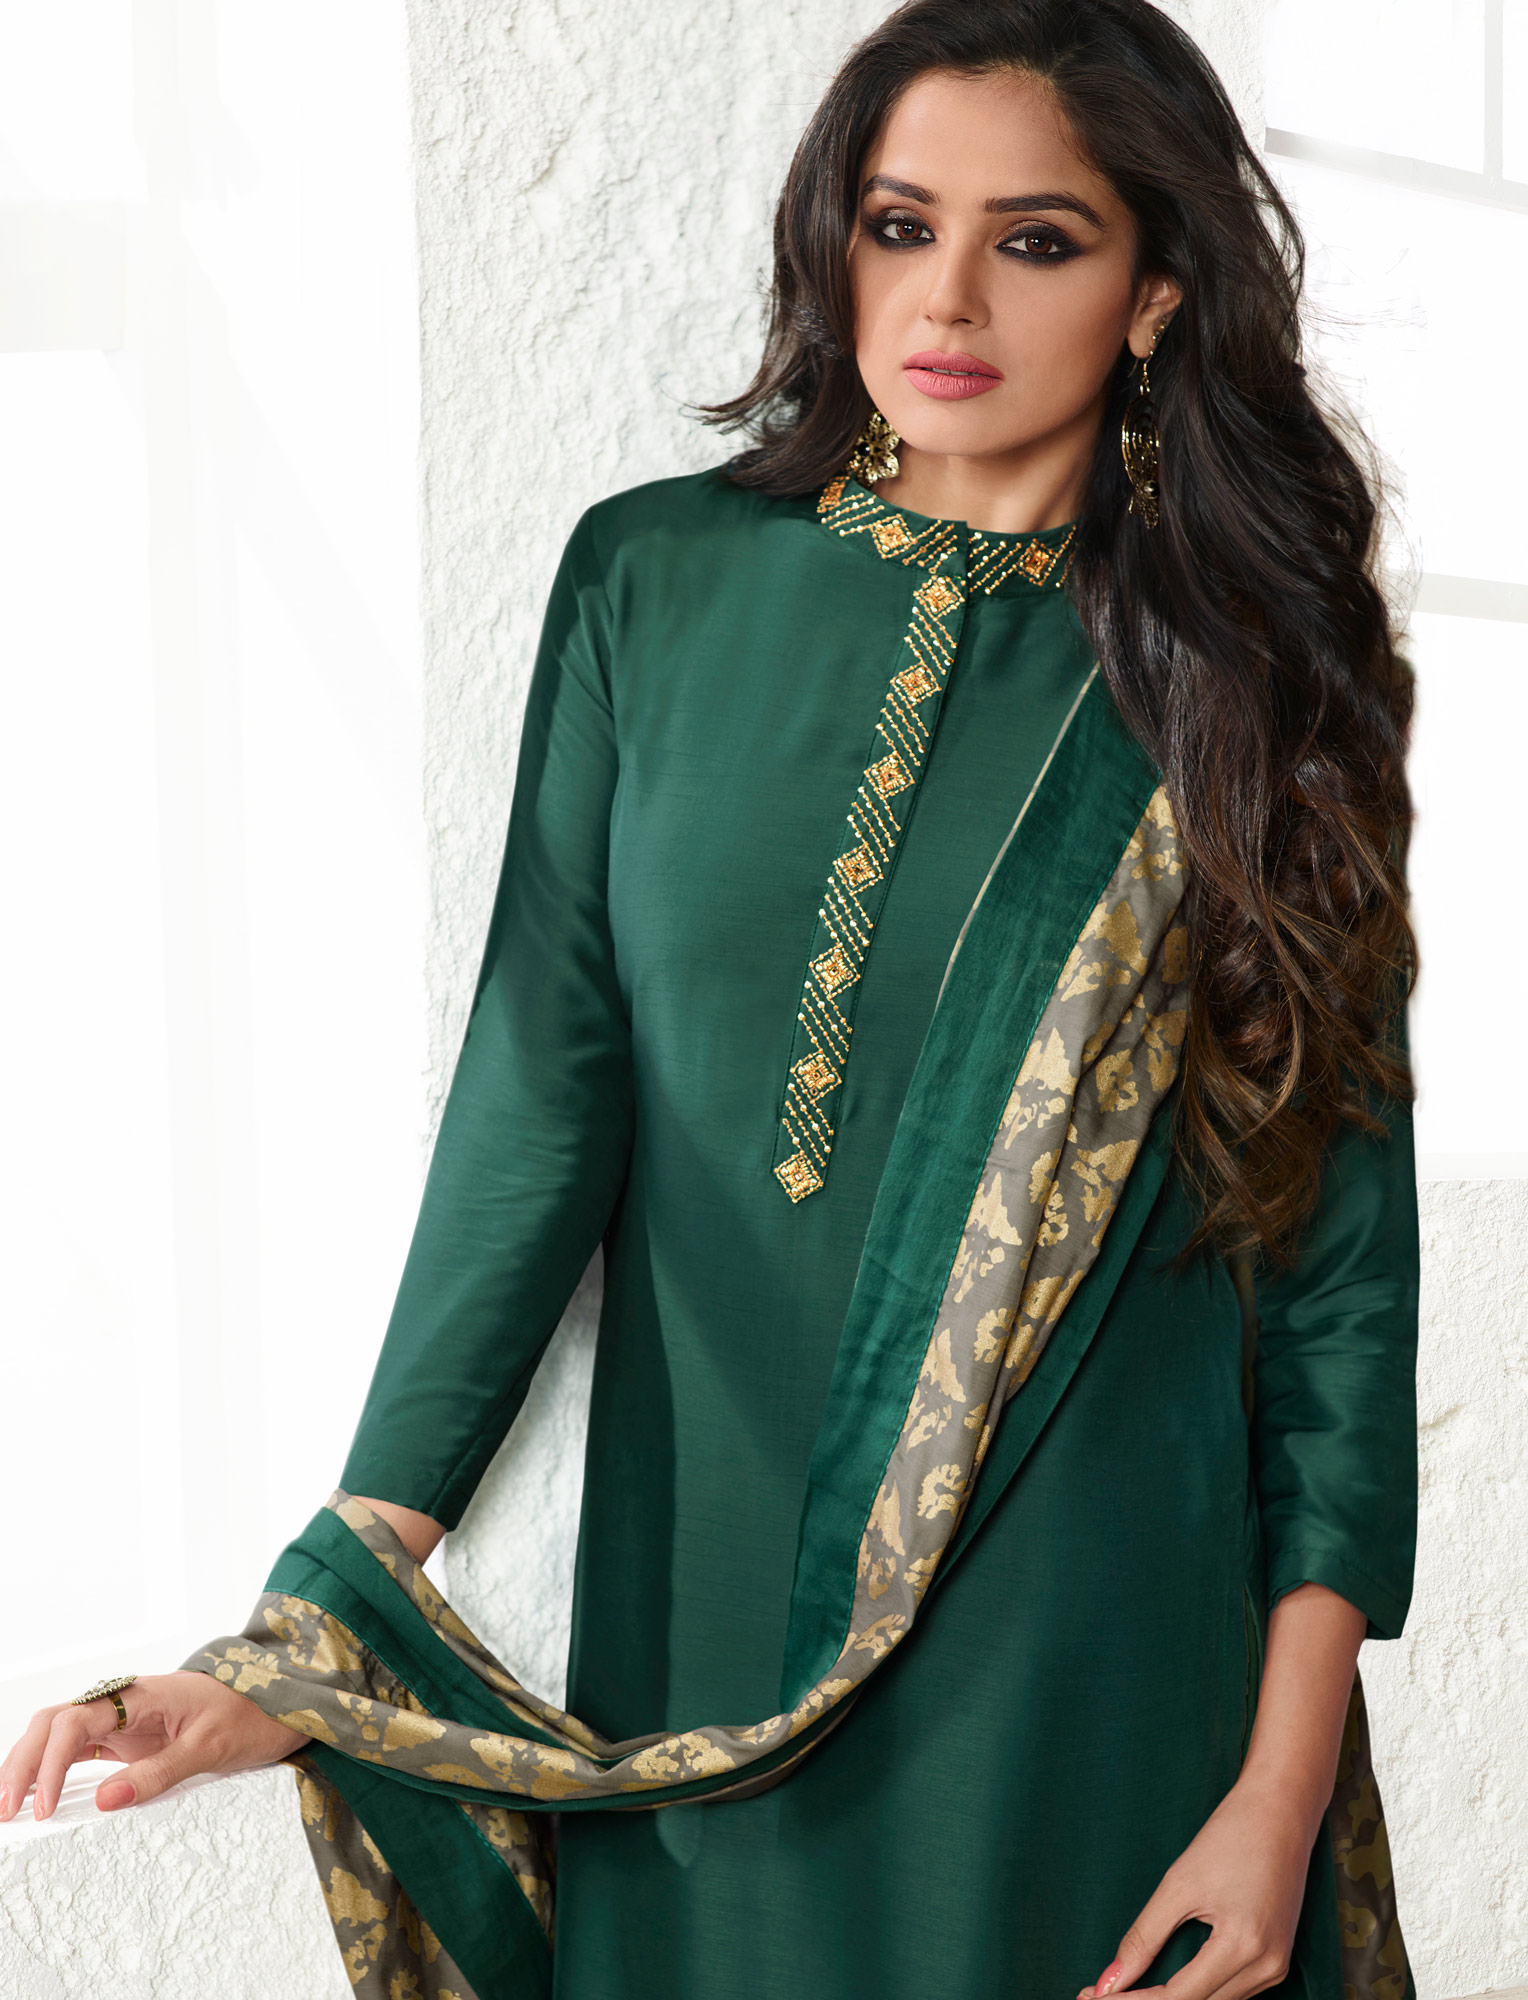 Green Colored Printed Casual Wear Cotton Silk Salwar Suit